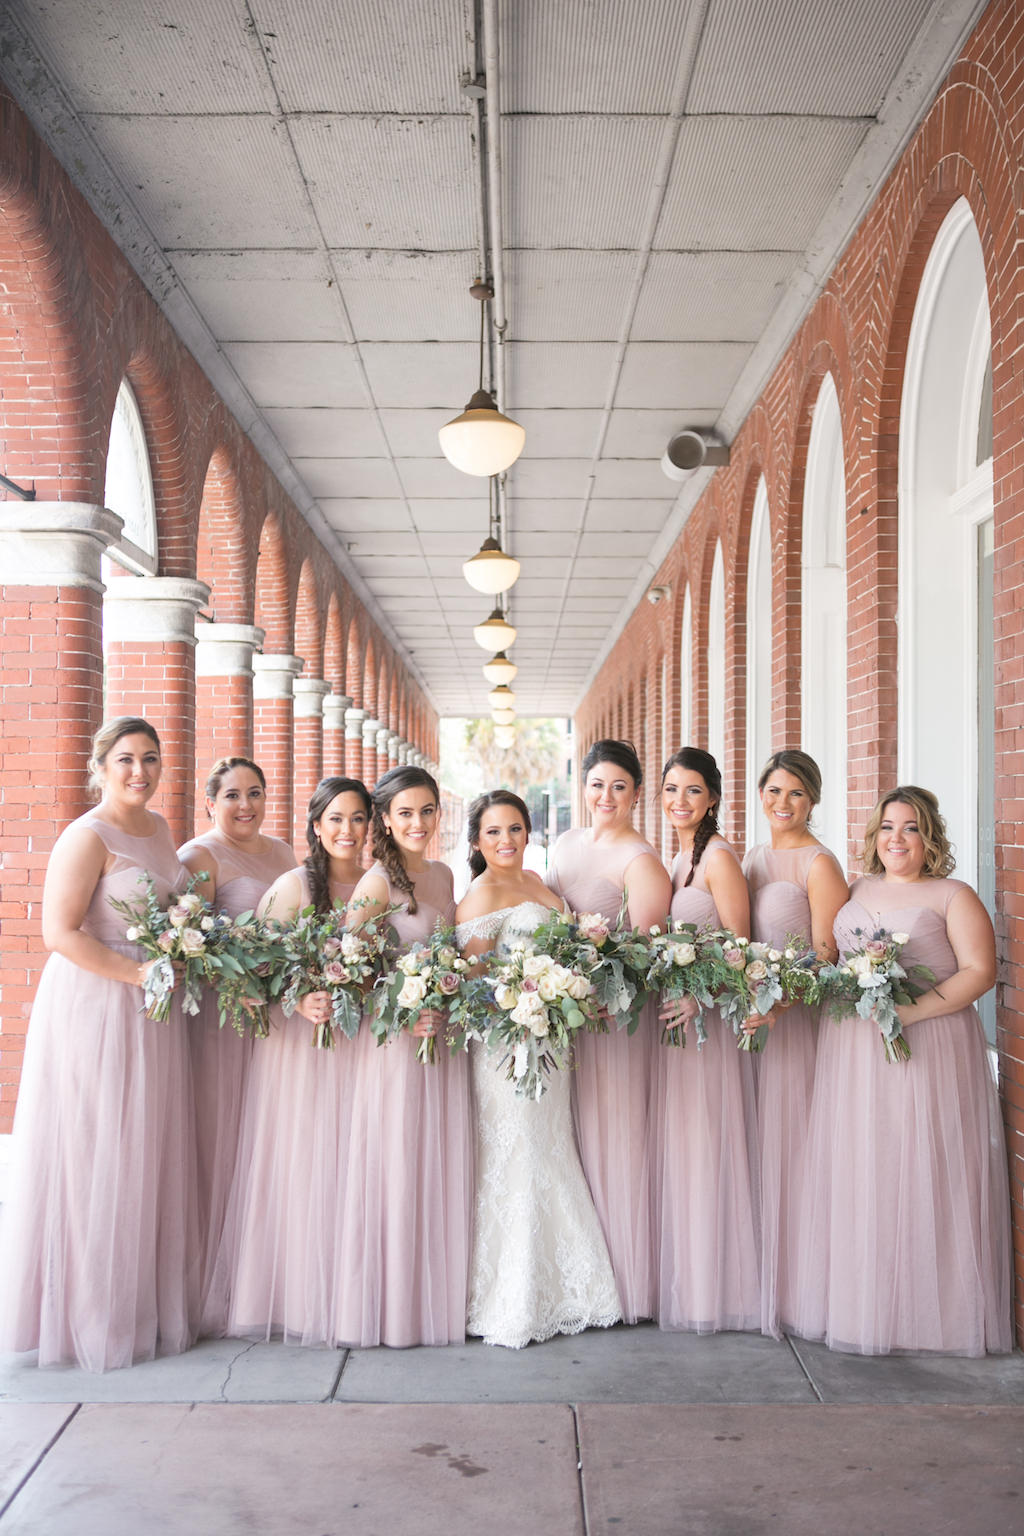 Outdoor Architectural Bridal Party Portrait, Bride in Off The Shoulder Lace Mermaid Augusta Jones Dress, Bridesmaids in Matching Strapless Layered Mauve Pink Jenny Yoo Dresses, with Blush Rose and Floral and Greenery Bouquet   Tampa Bay Wedding Photographer Carrie Wildes Photography   Dress Shop Bella Bridesmaids